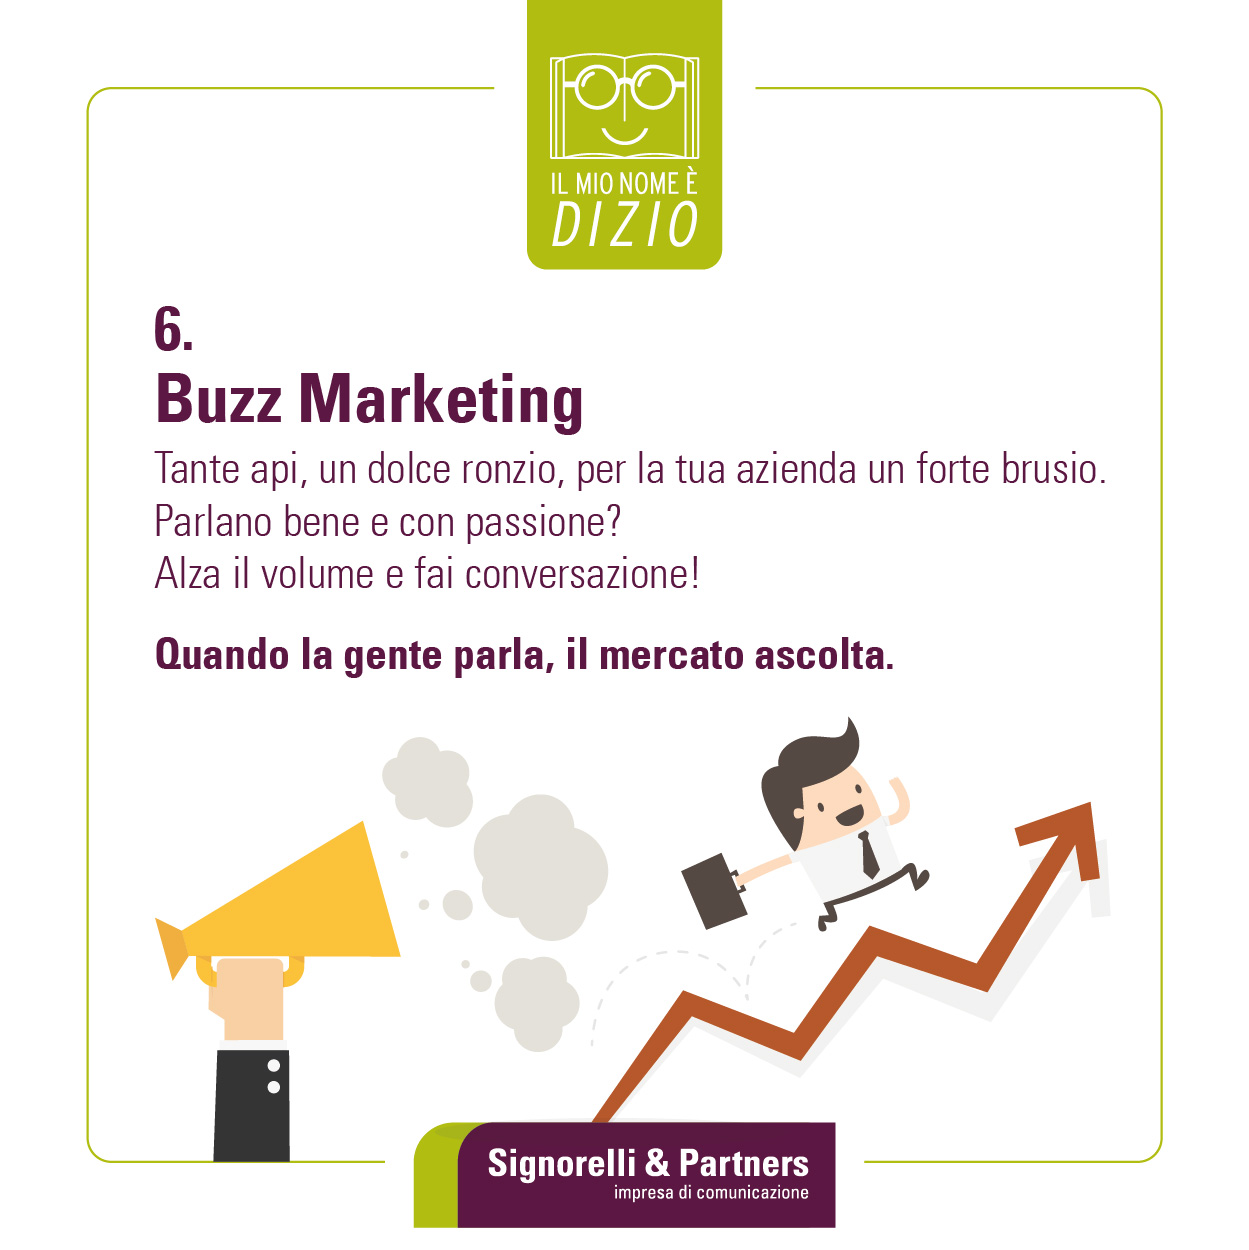 Buzz Marketing - Parole strane che circolano sul web